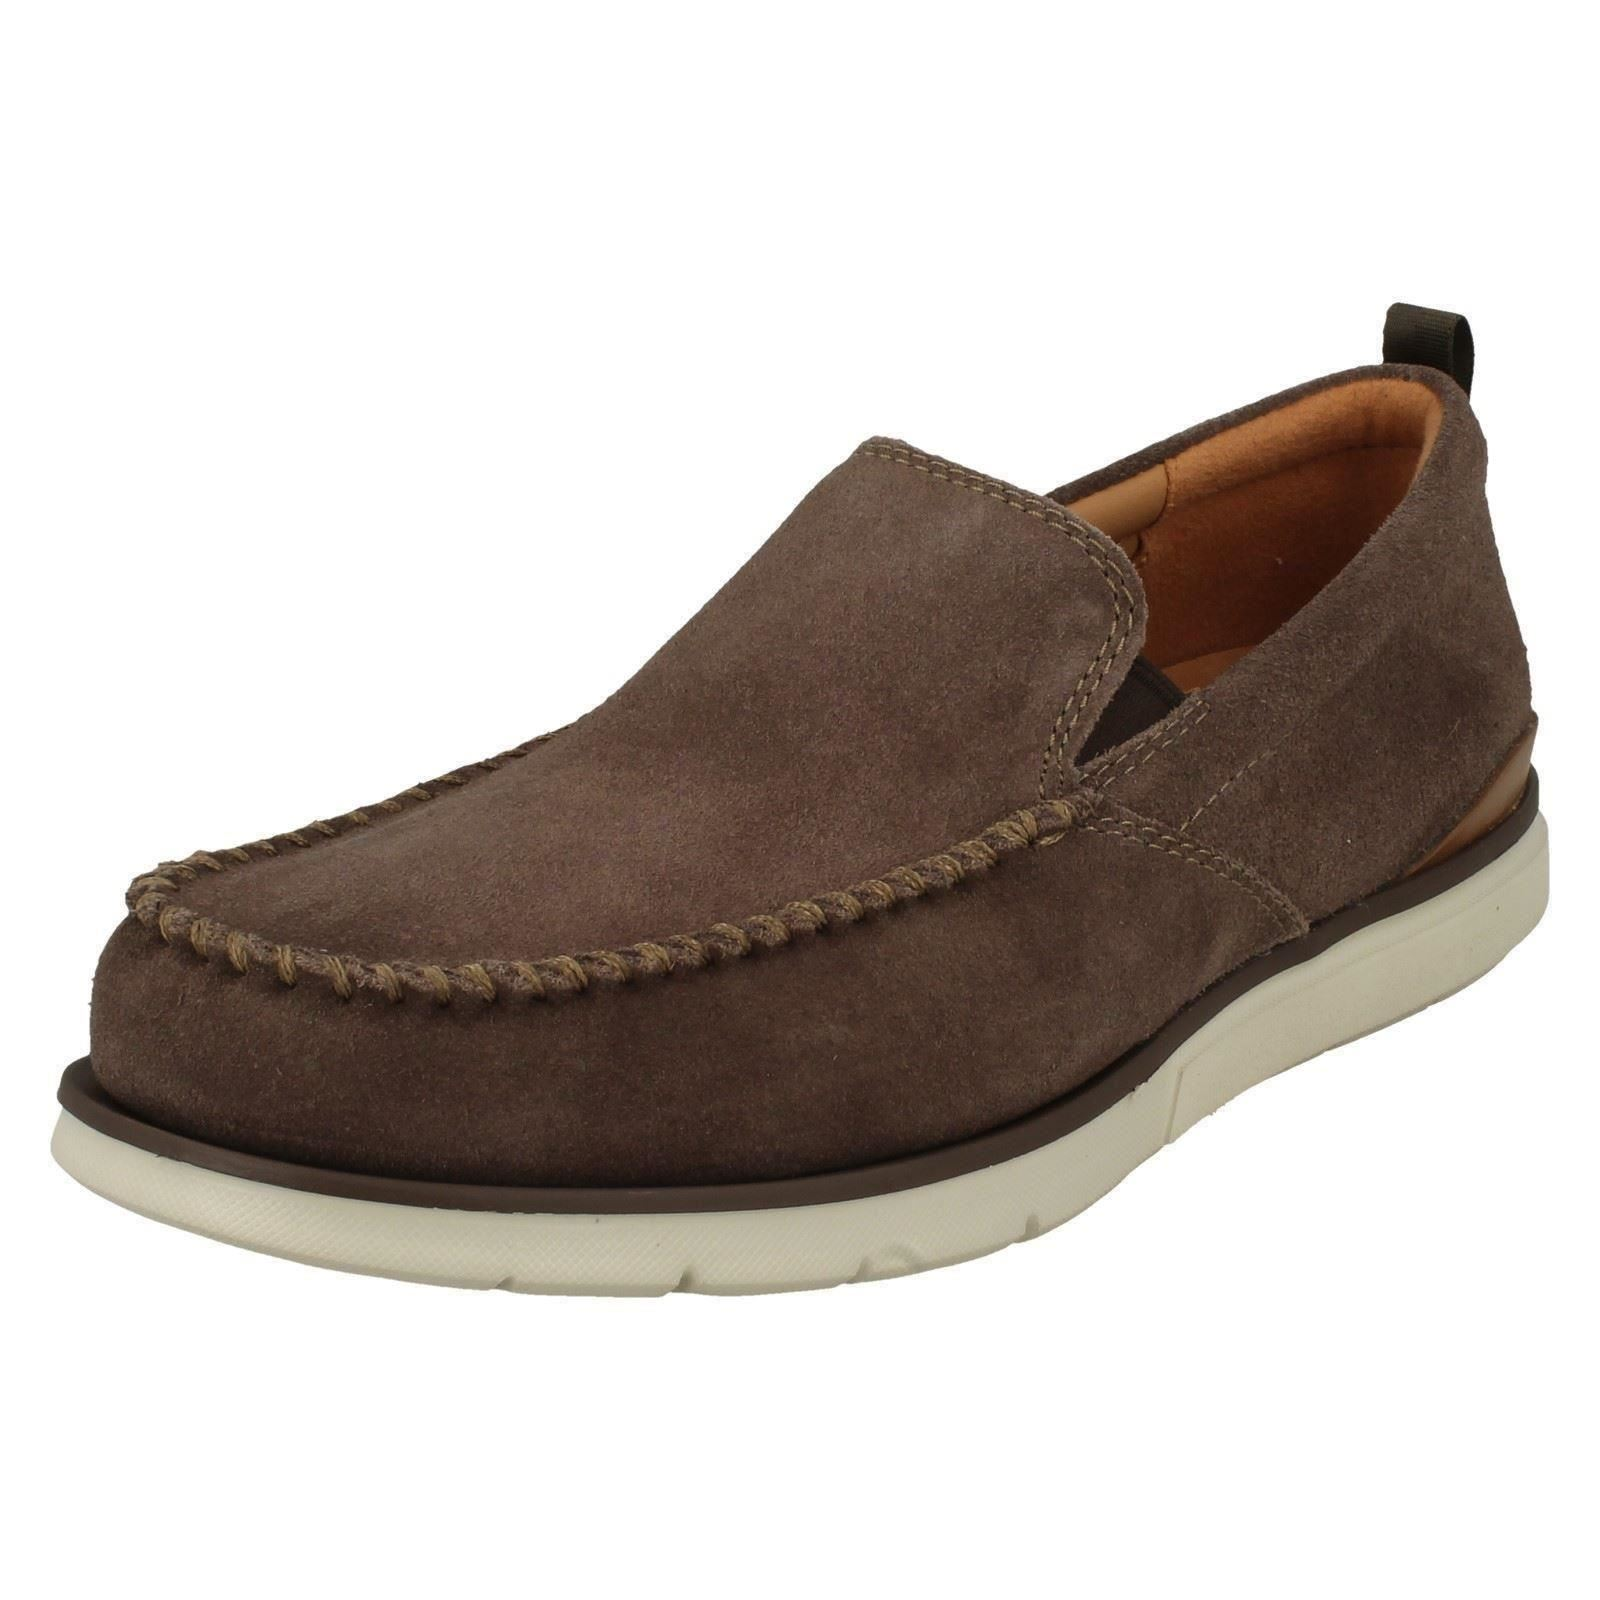 Mens-Clarks-Casual-Slip-On-Shoes-039-Edgewood-